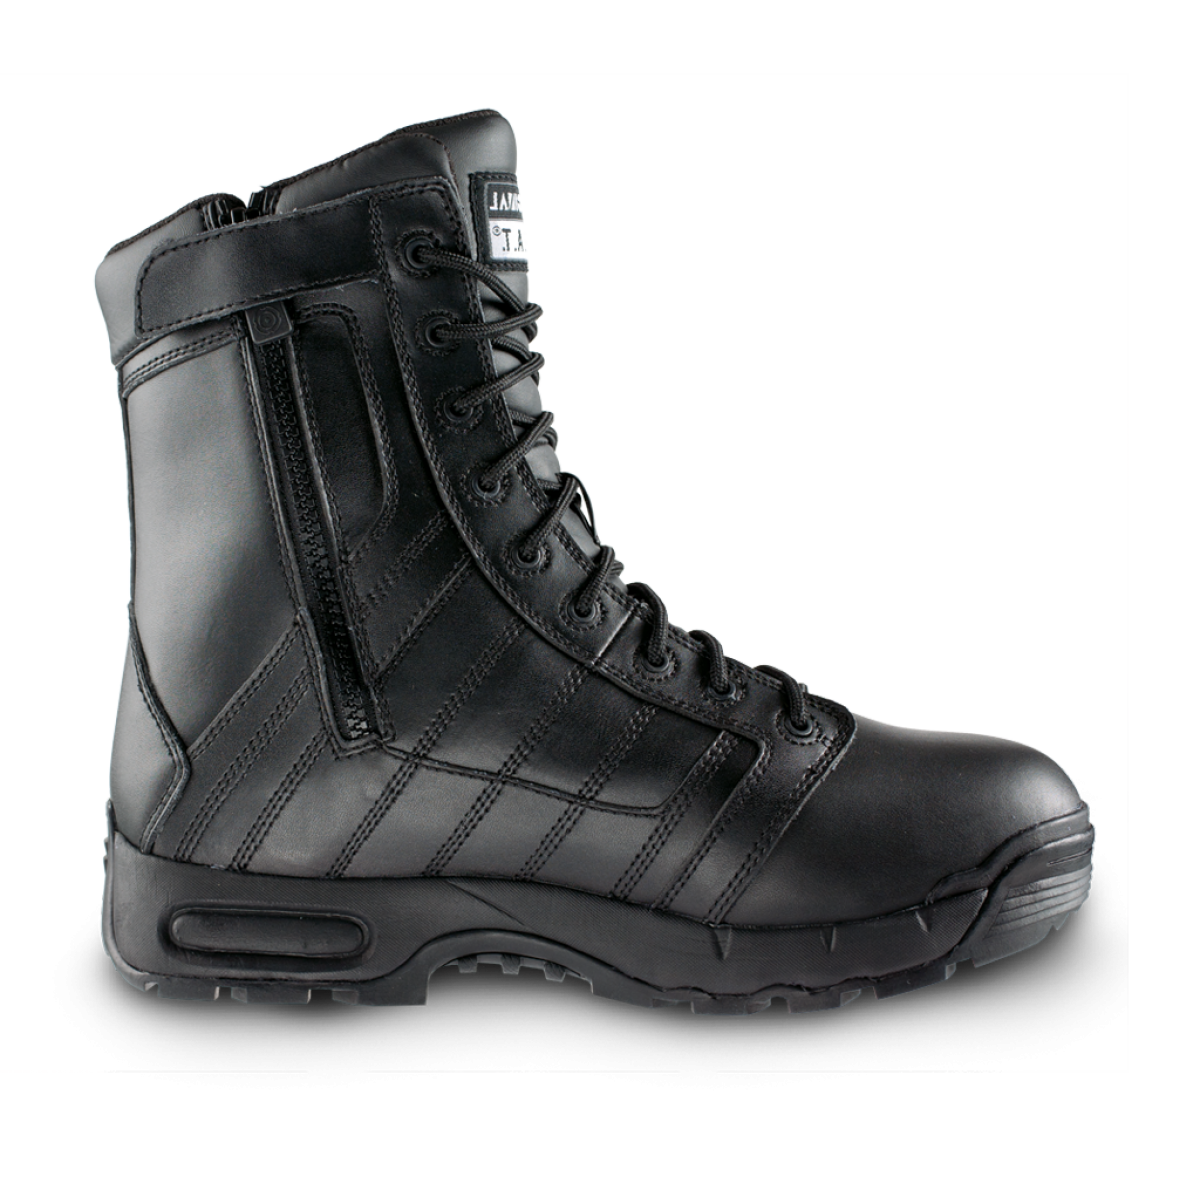 Transparent boot original. Boots png images free